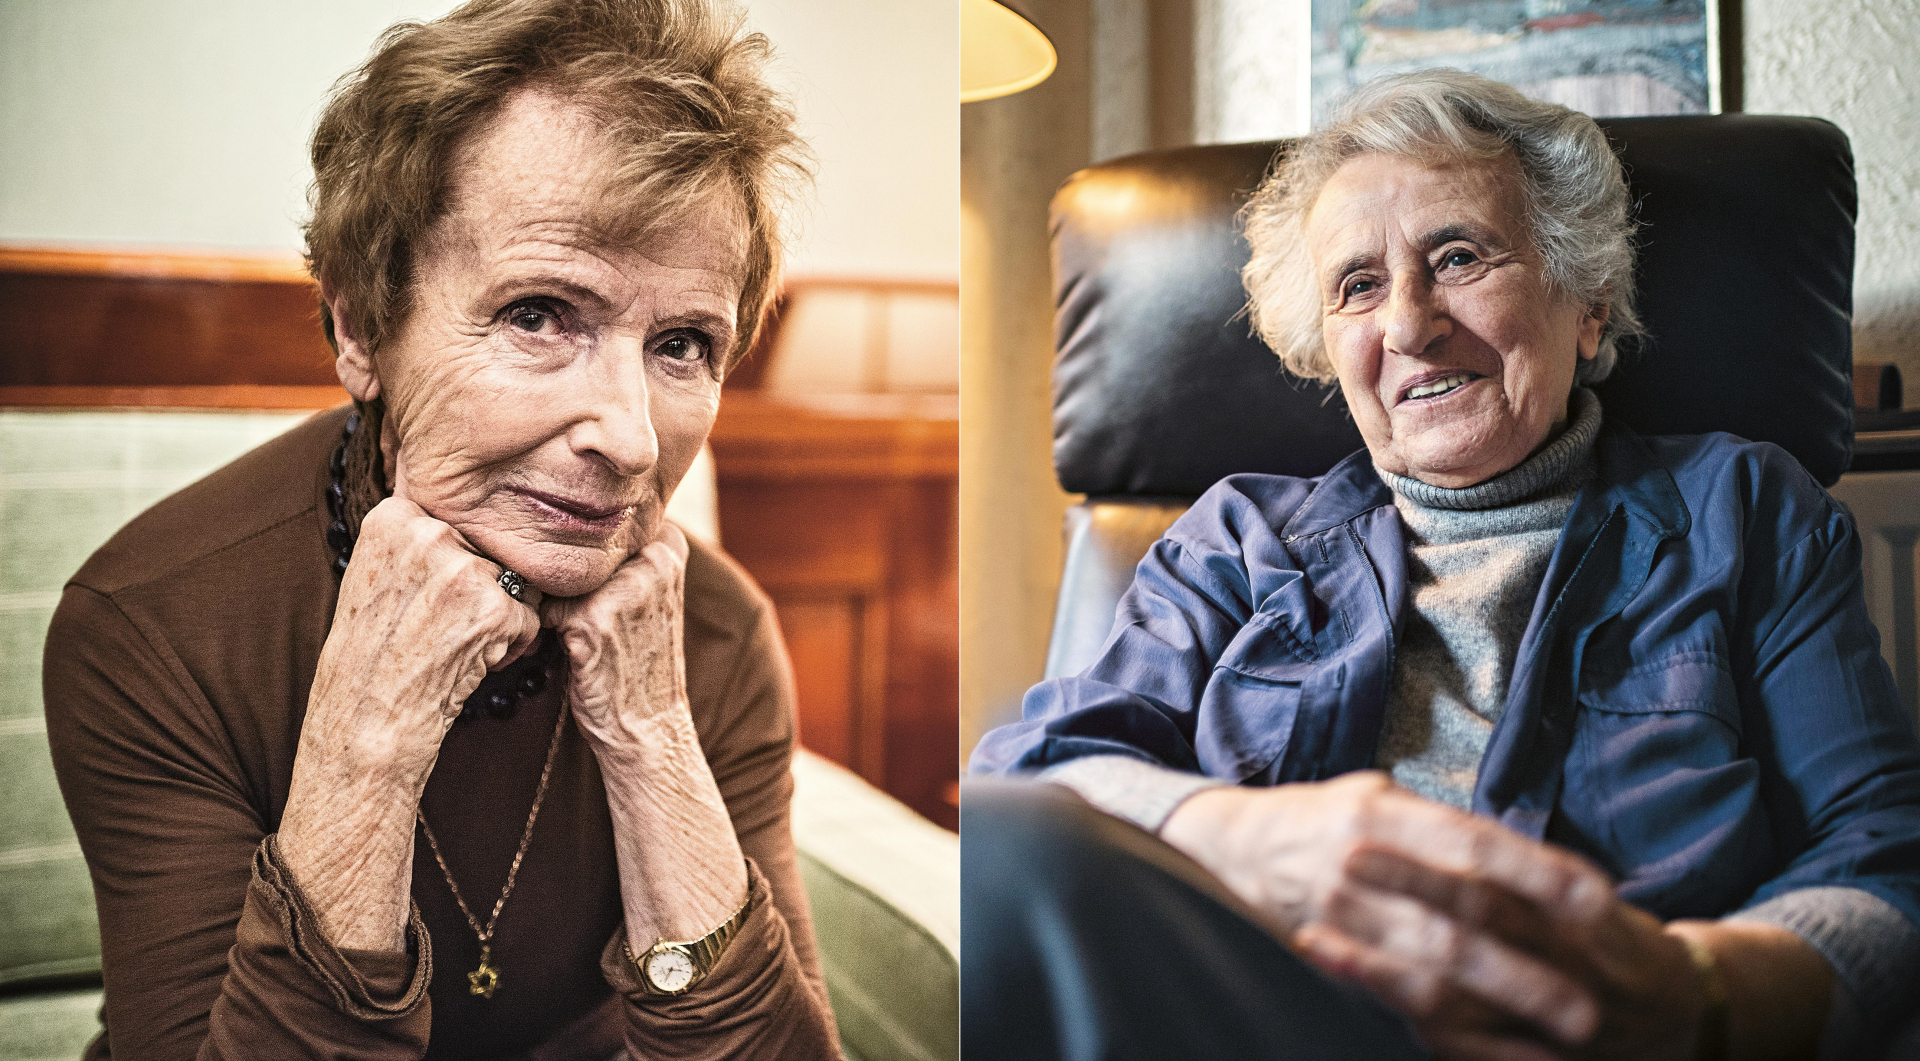 Portraits of Renate Harpprecht and Anita Lasker Wallfisch